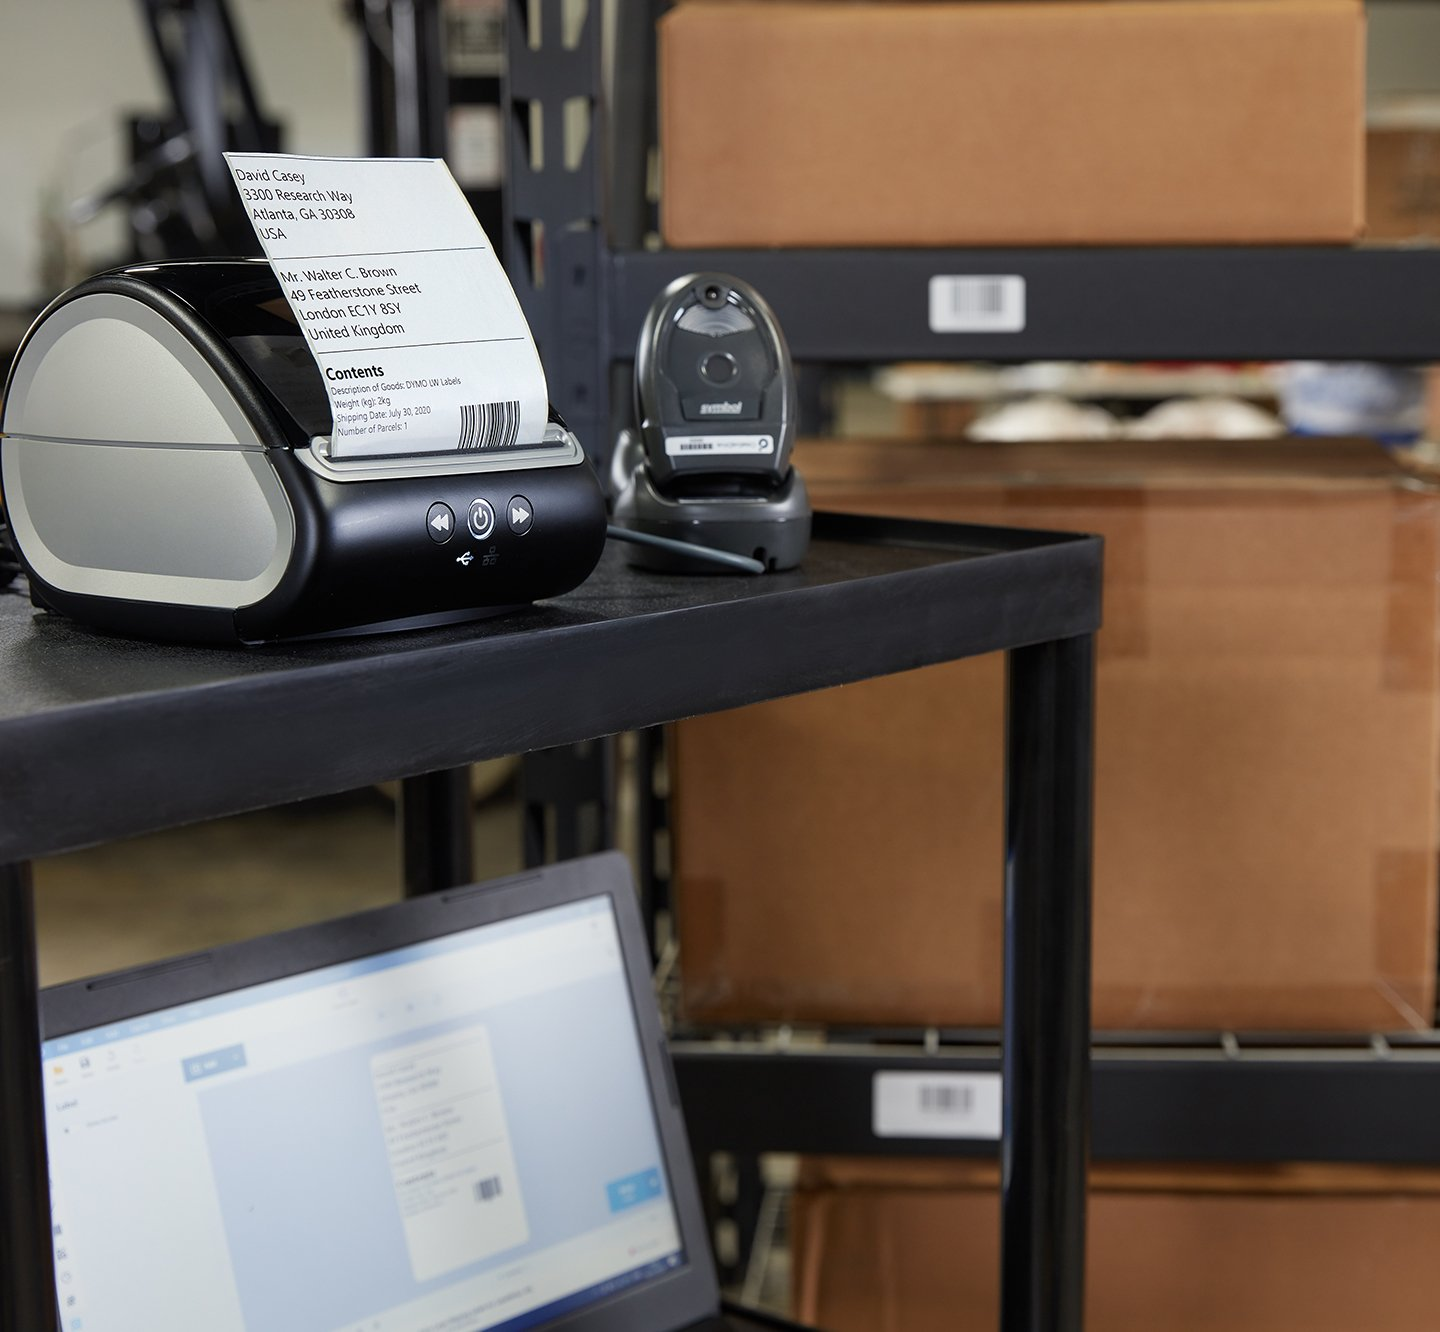 A Label Writer 5 X L printing a shipping label.